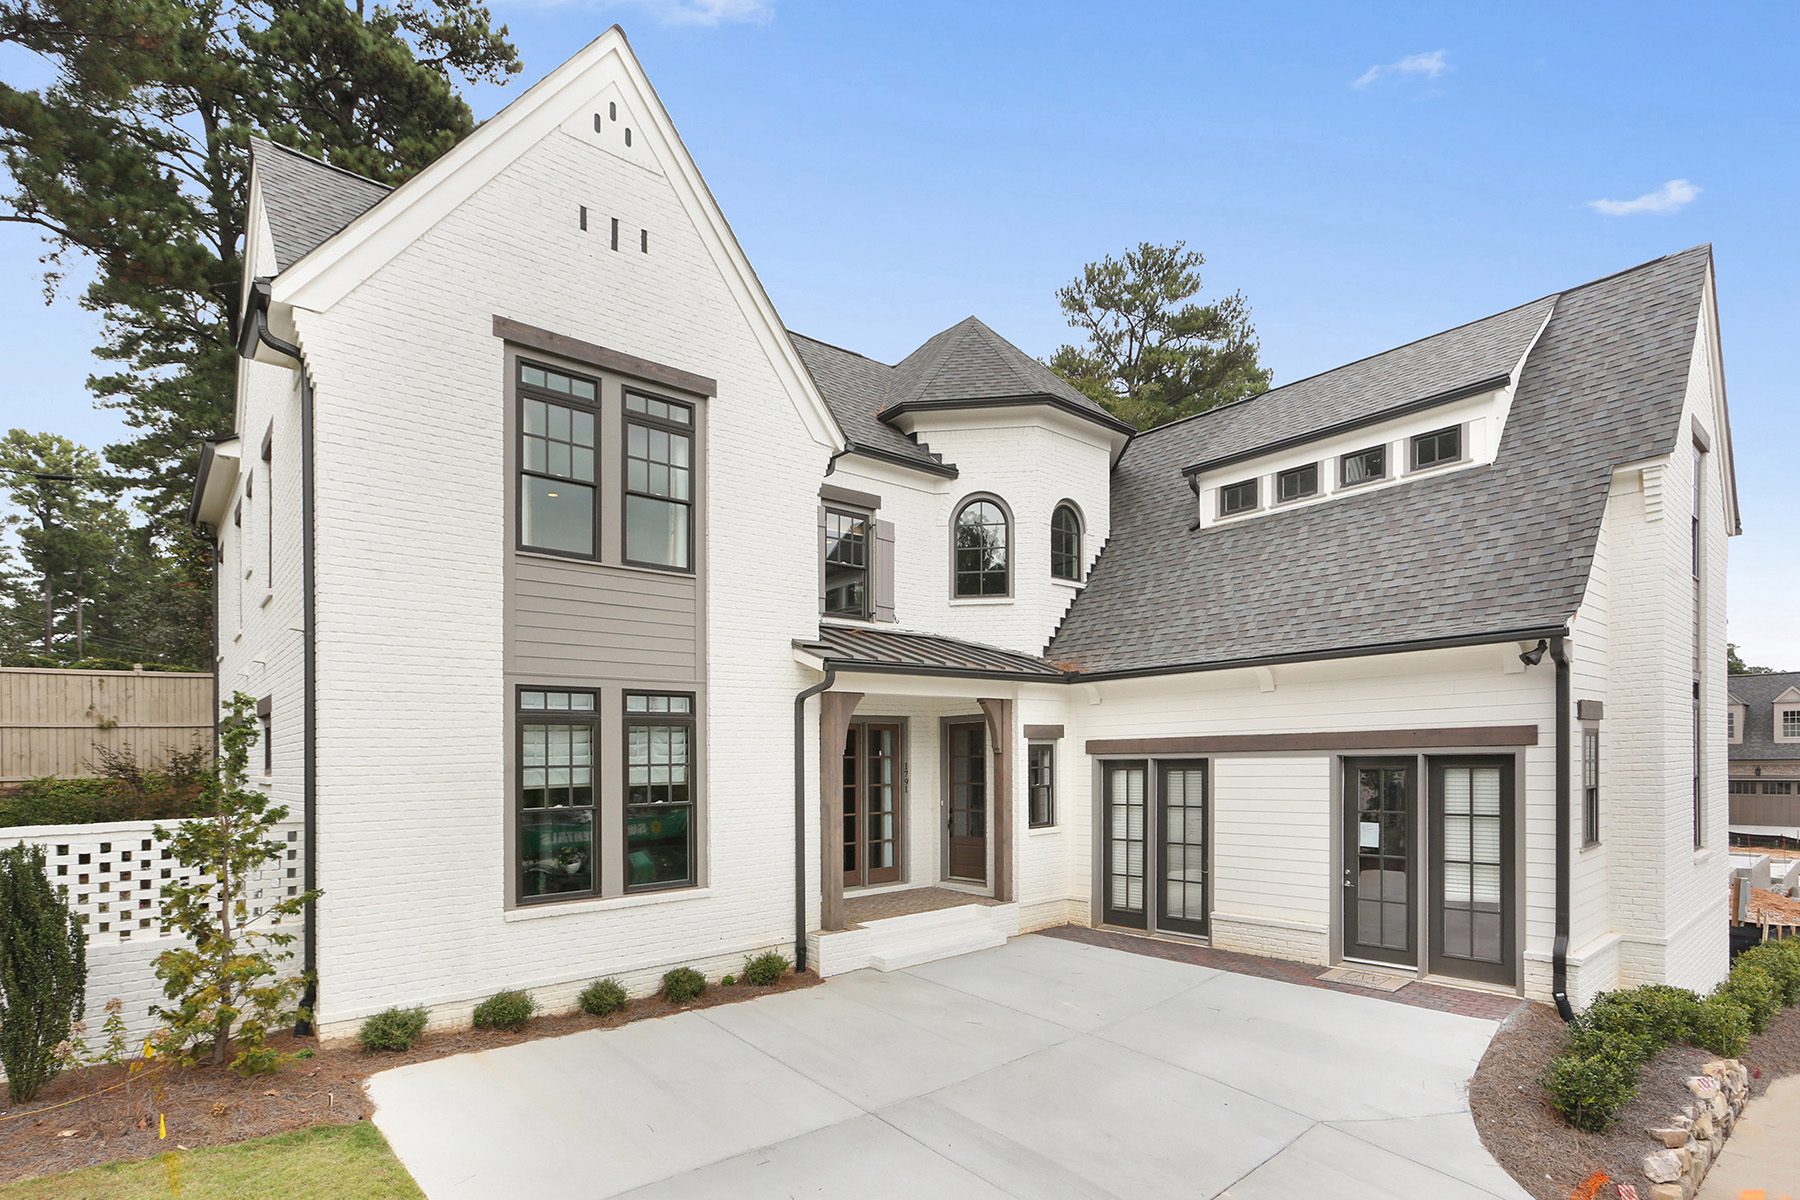 Single Family Home for Sale at Incredible Home in Dunwoody Green 1791 Kent Ave Atlanta, Georgia 30338 United States